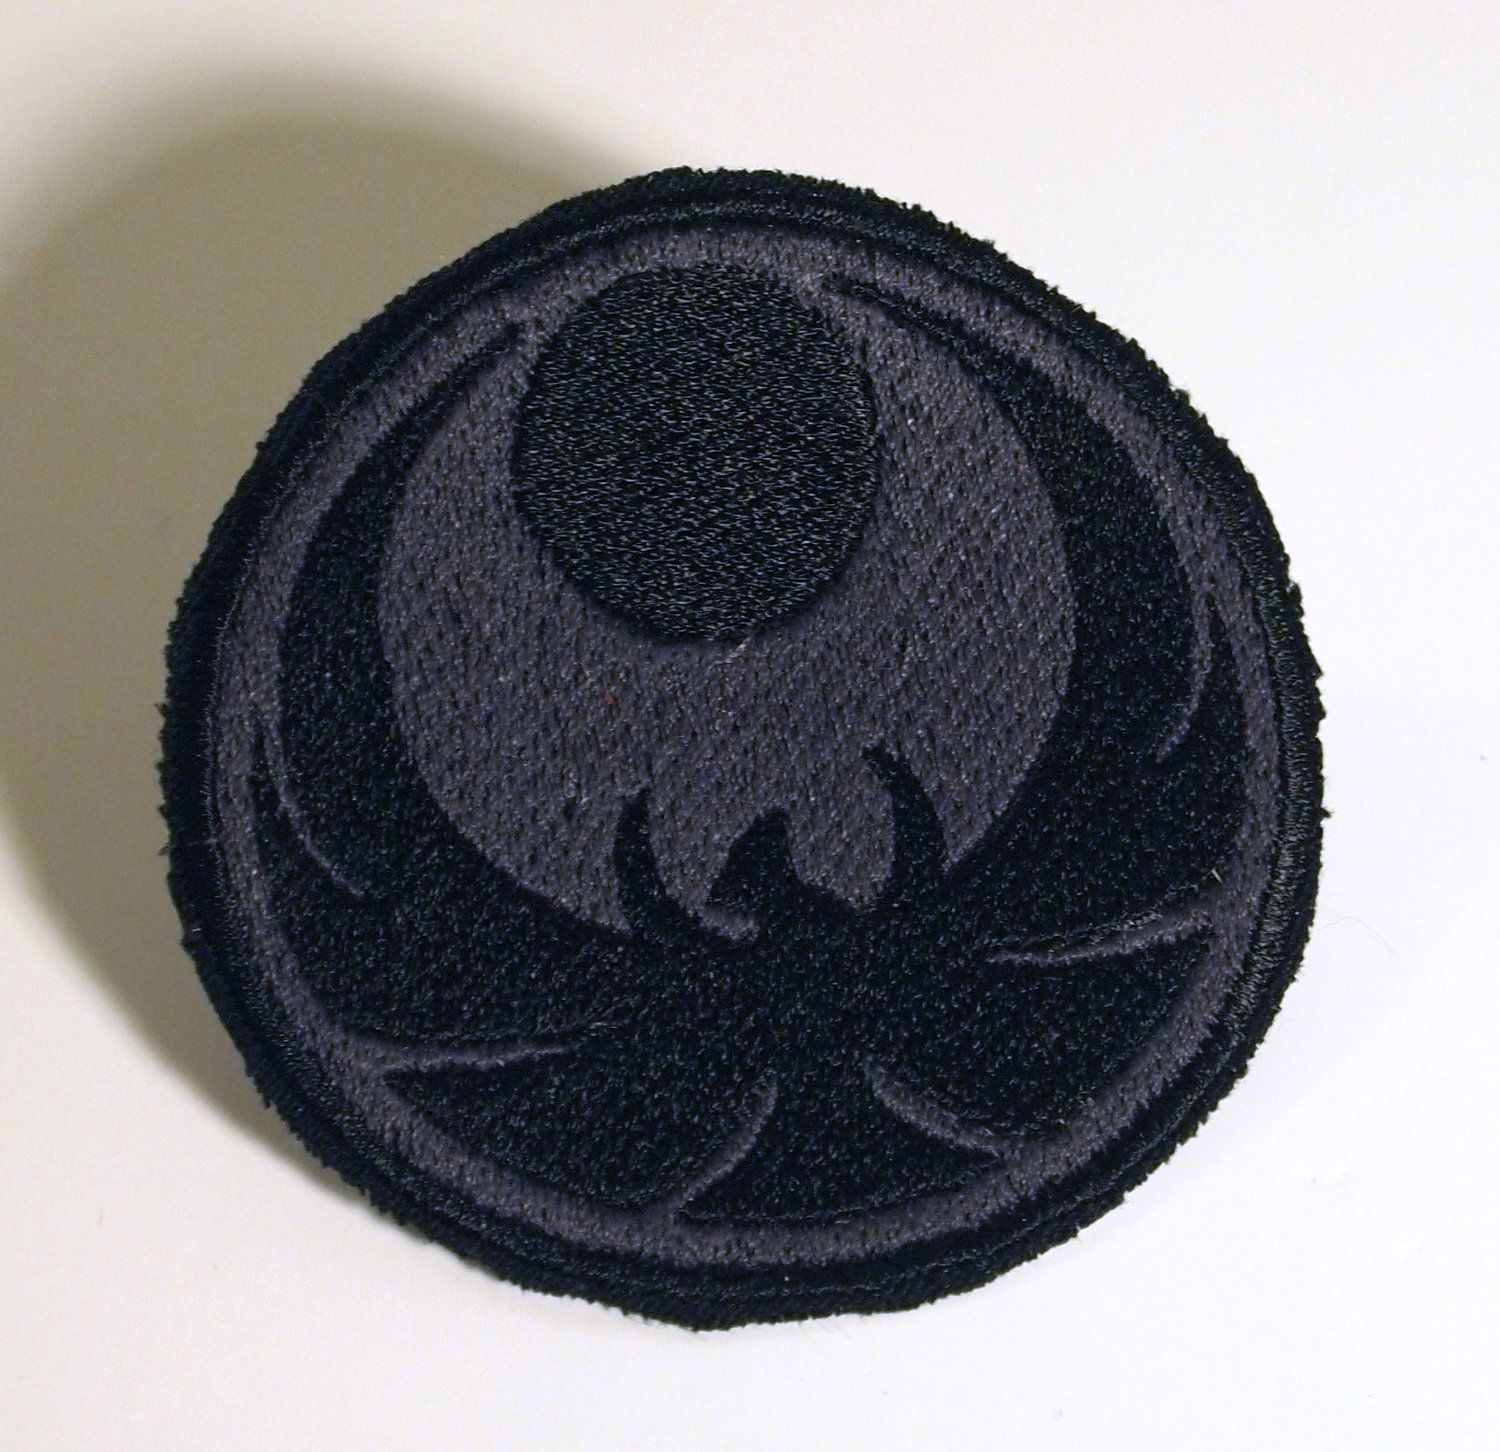 Skyrim inspired- Thieves guild - Nightingale Nocturnal embroidered